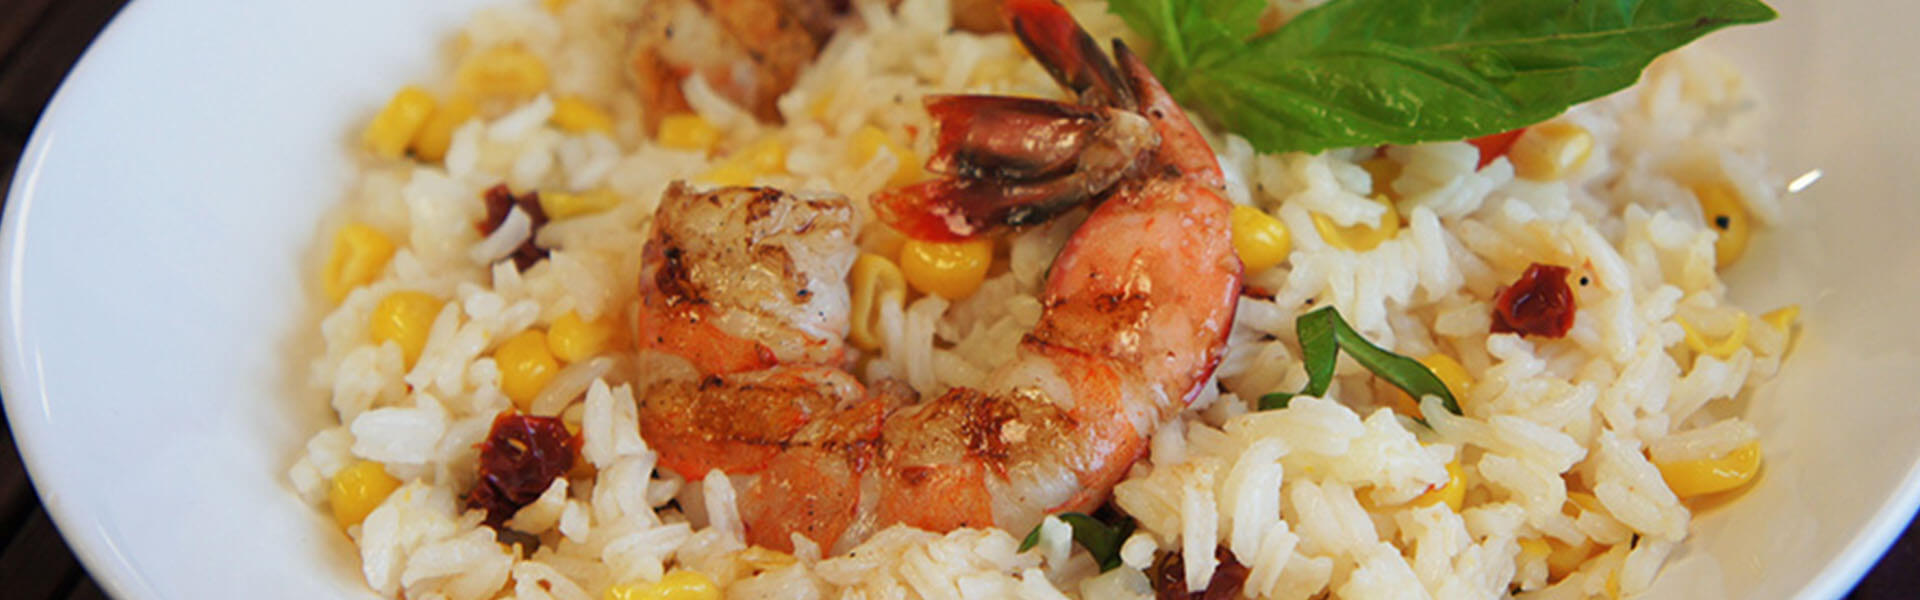 Savory Shrimp & Rice Bowl